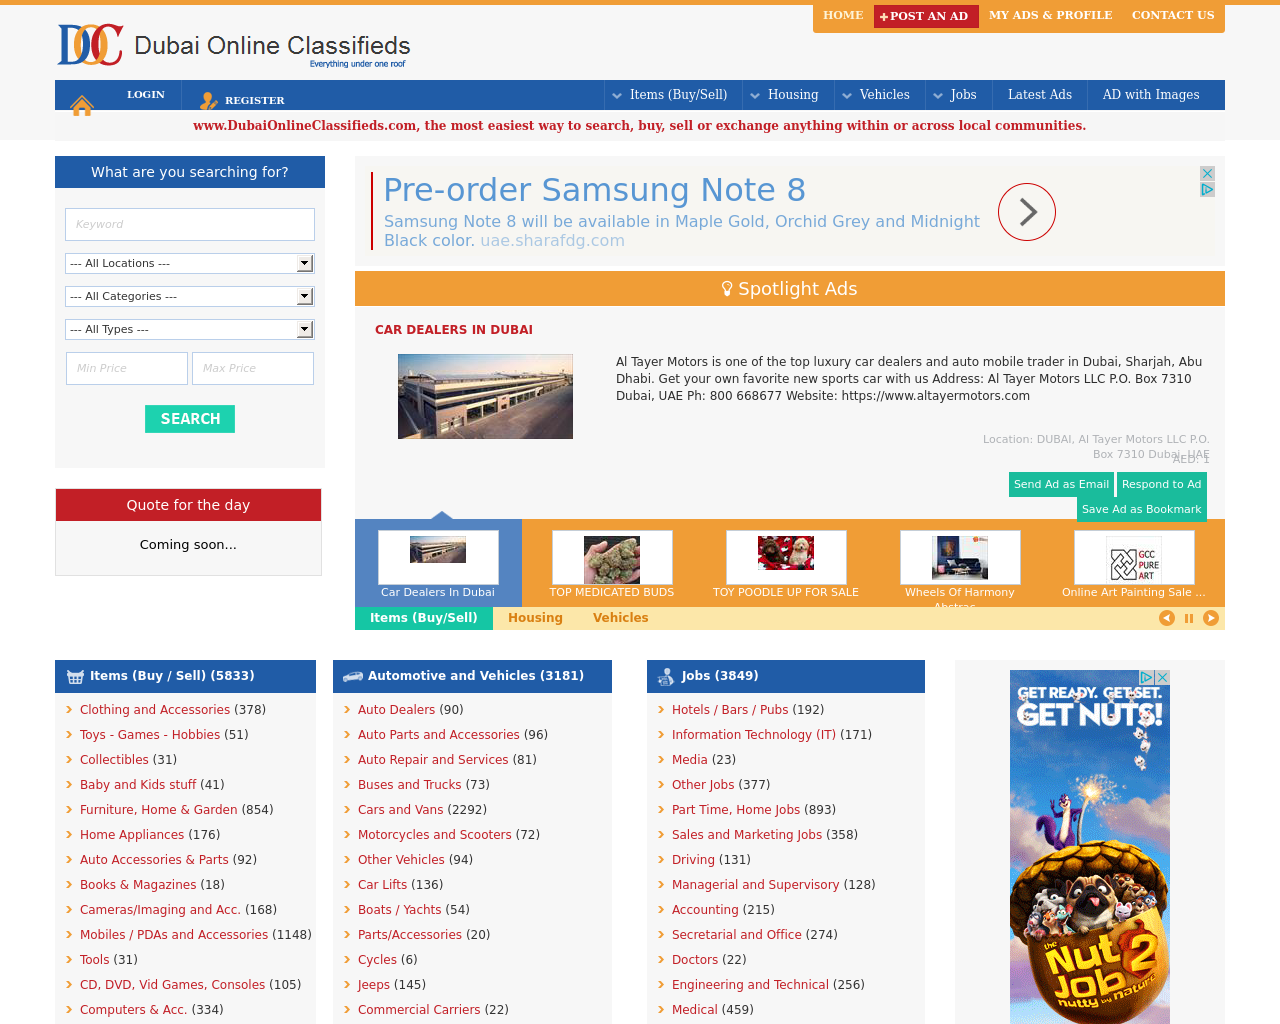 Dubai-Online-Classifieds-Advertising-Reviews-Pricing